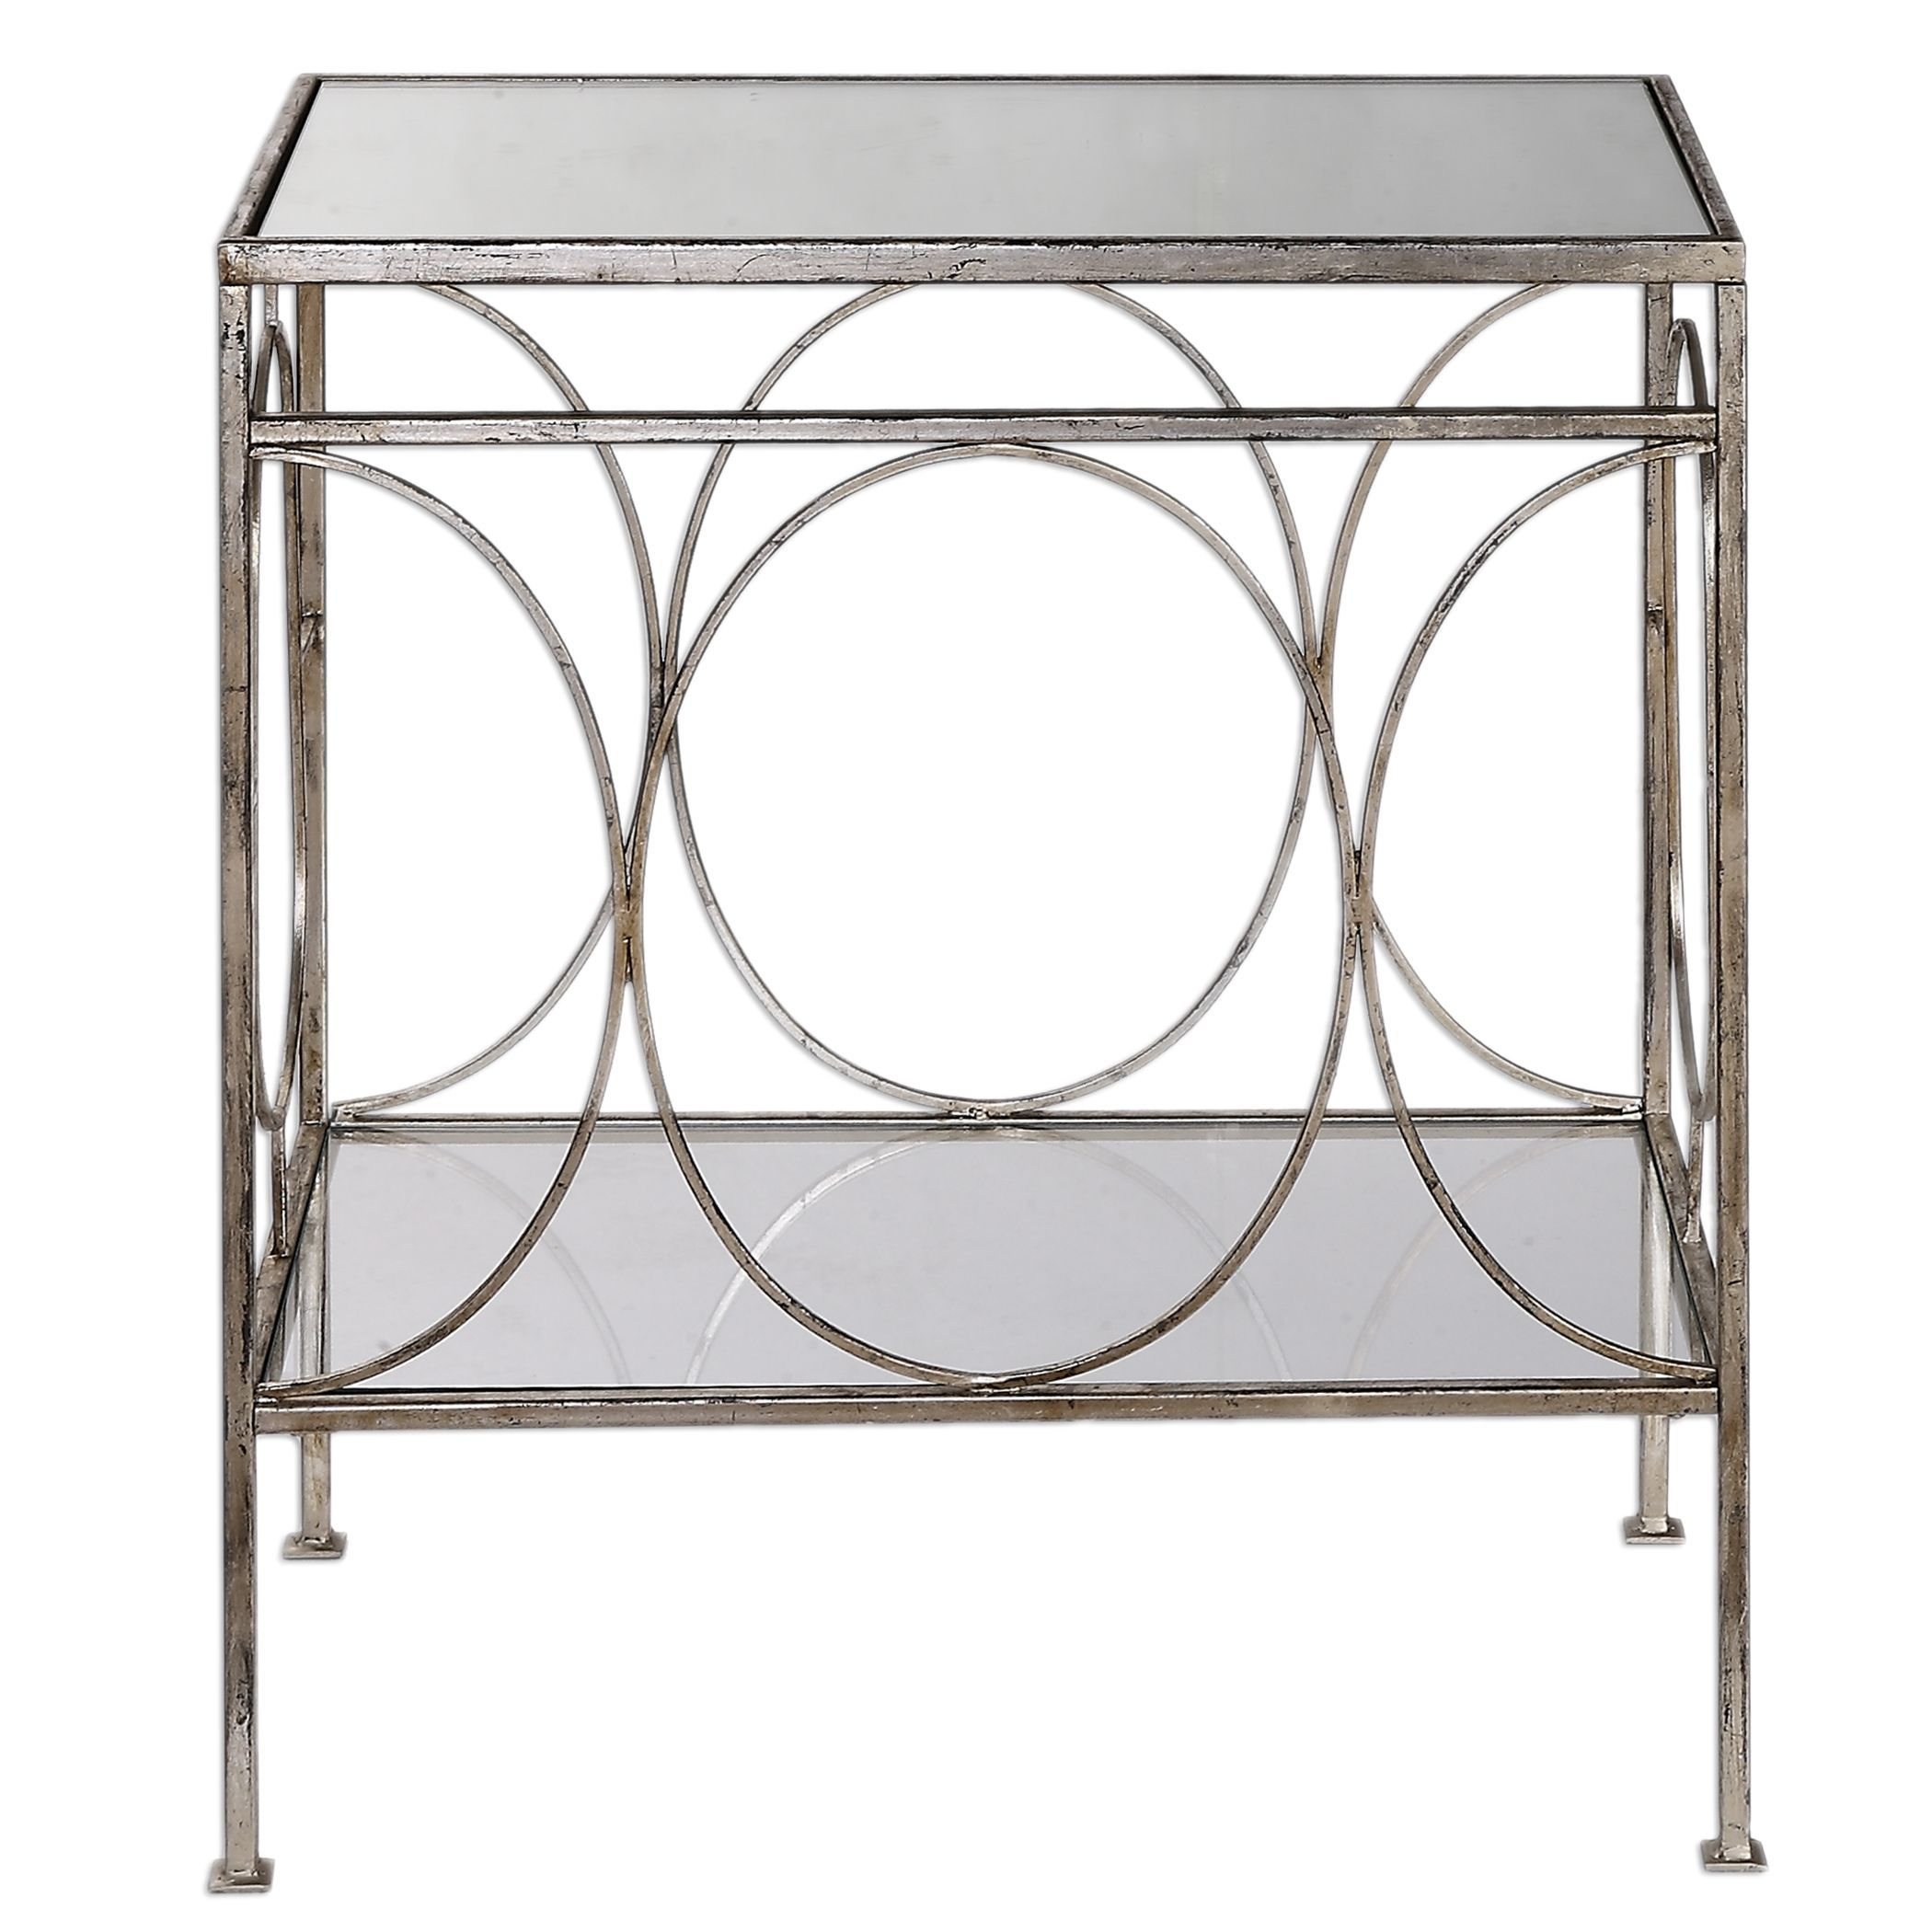 luano transitional distressed antique silver accent table uttermost tilt umbrella with stand rustic nightstands small contemporary end tables room essentials white single barn